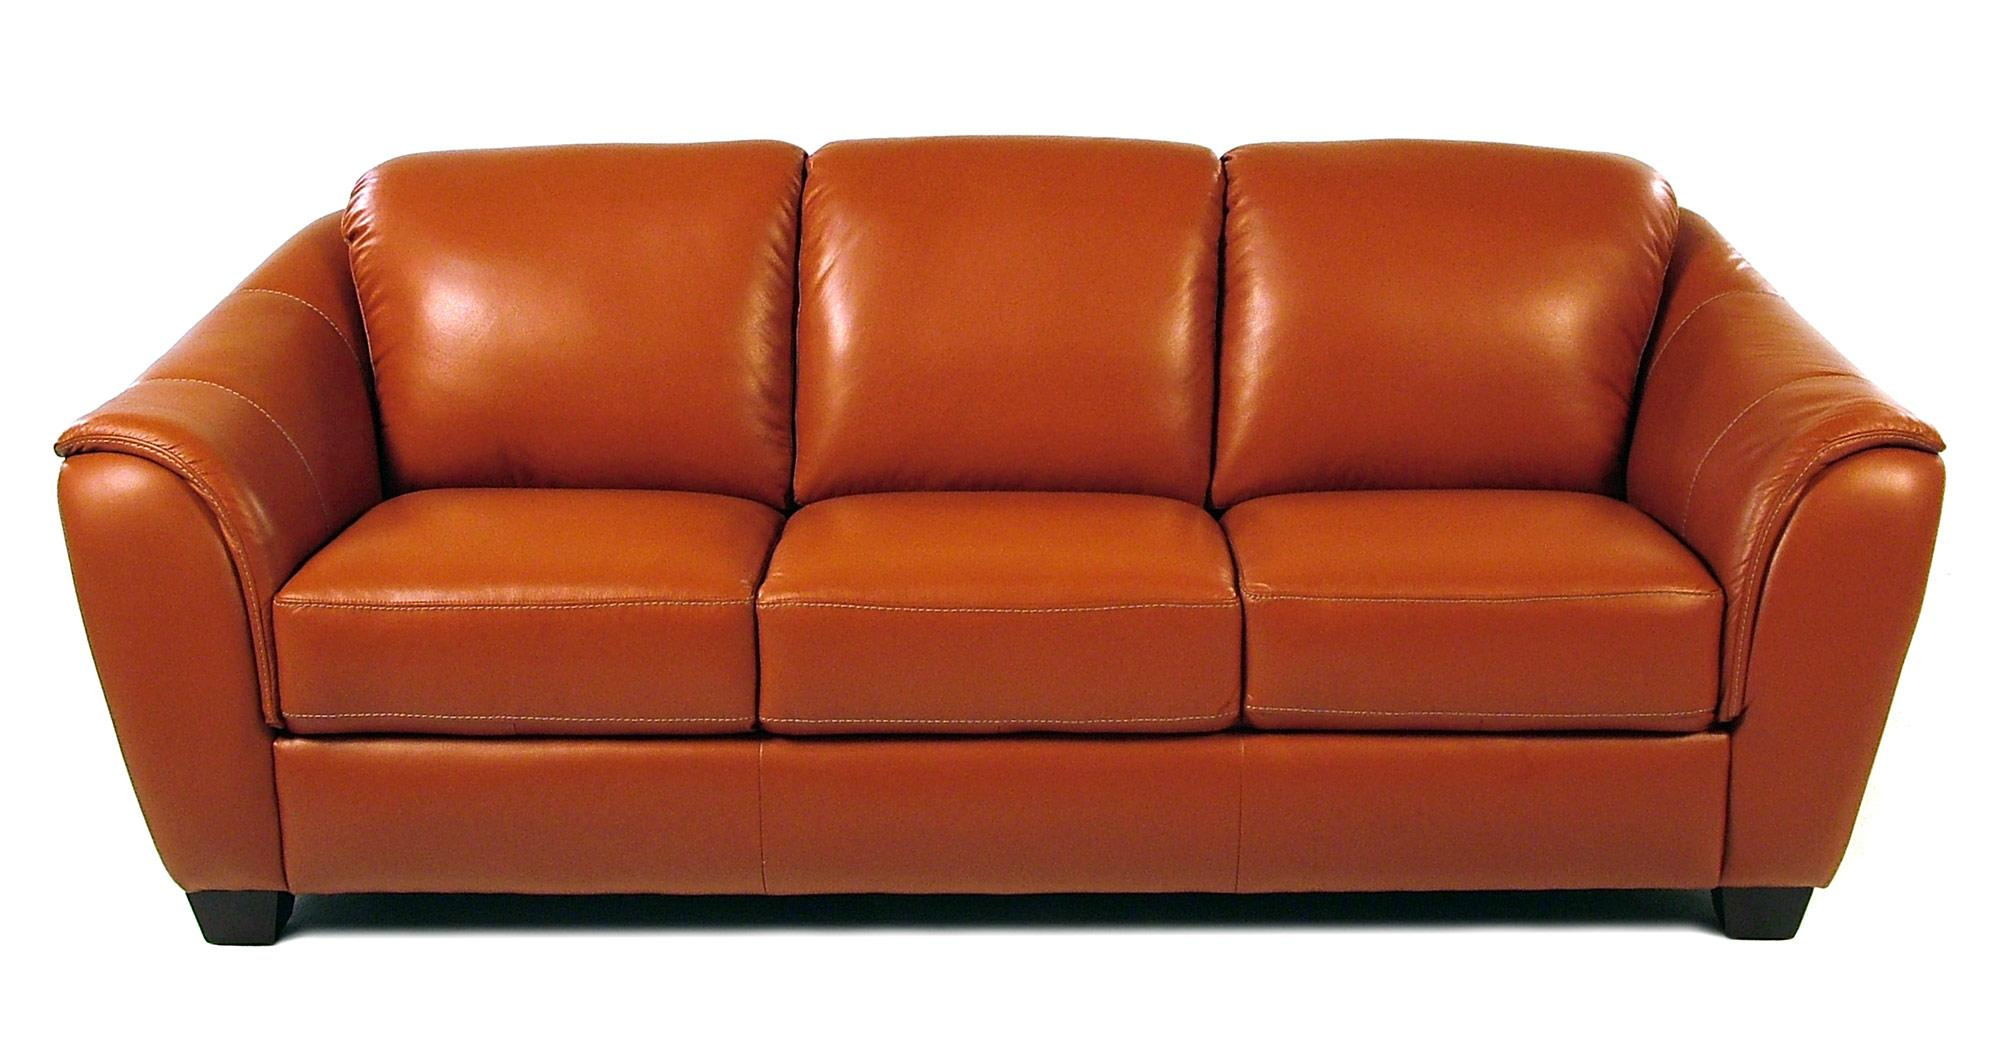 Loft Leather Chilli Pepper Leather Sofa - Item Number: 8590-30